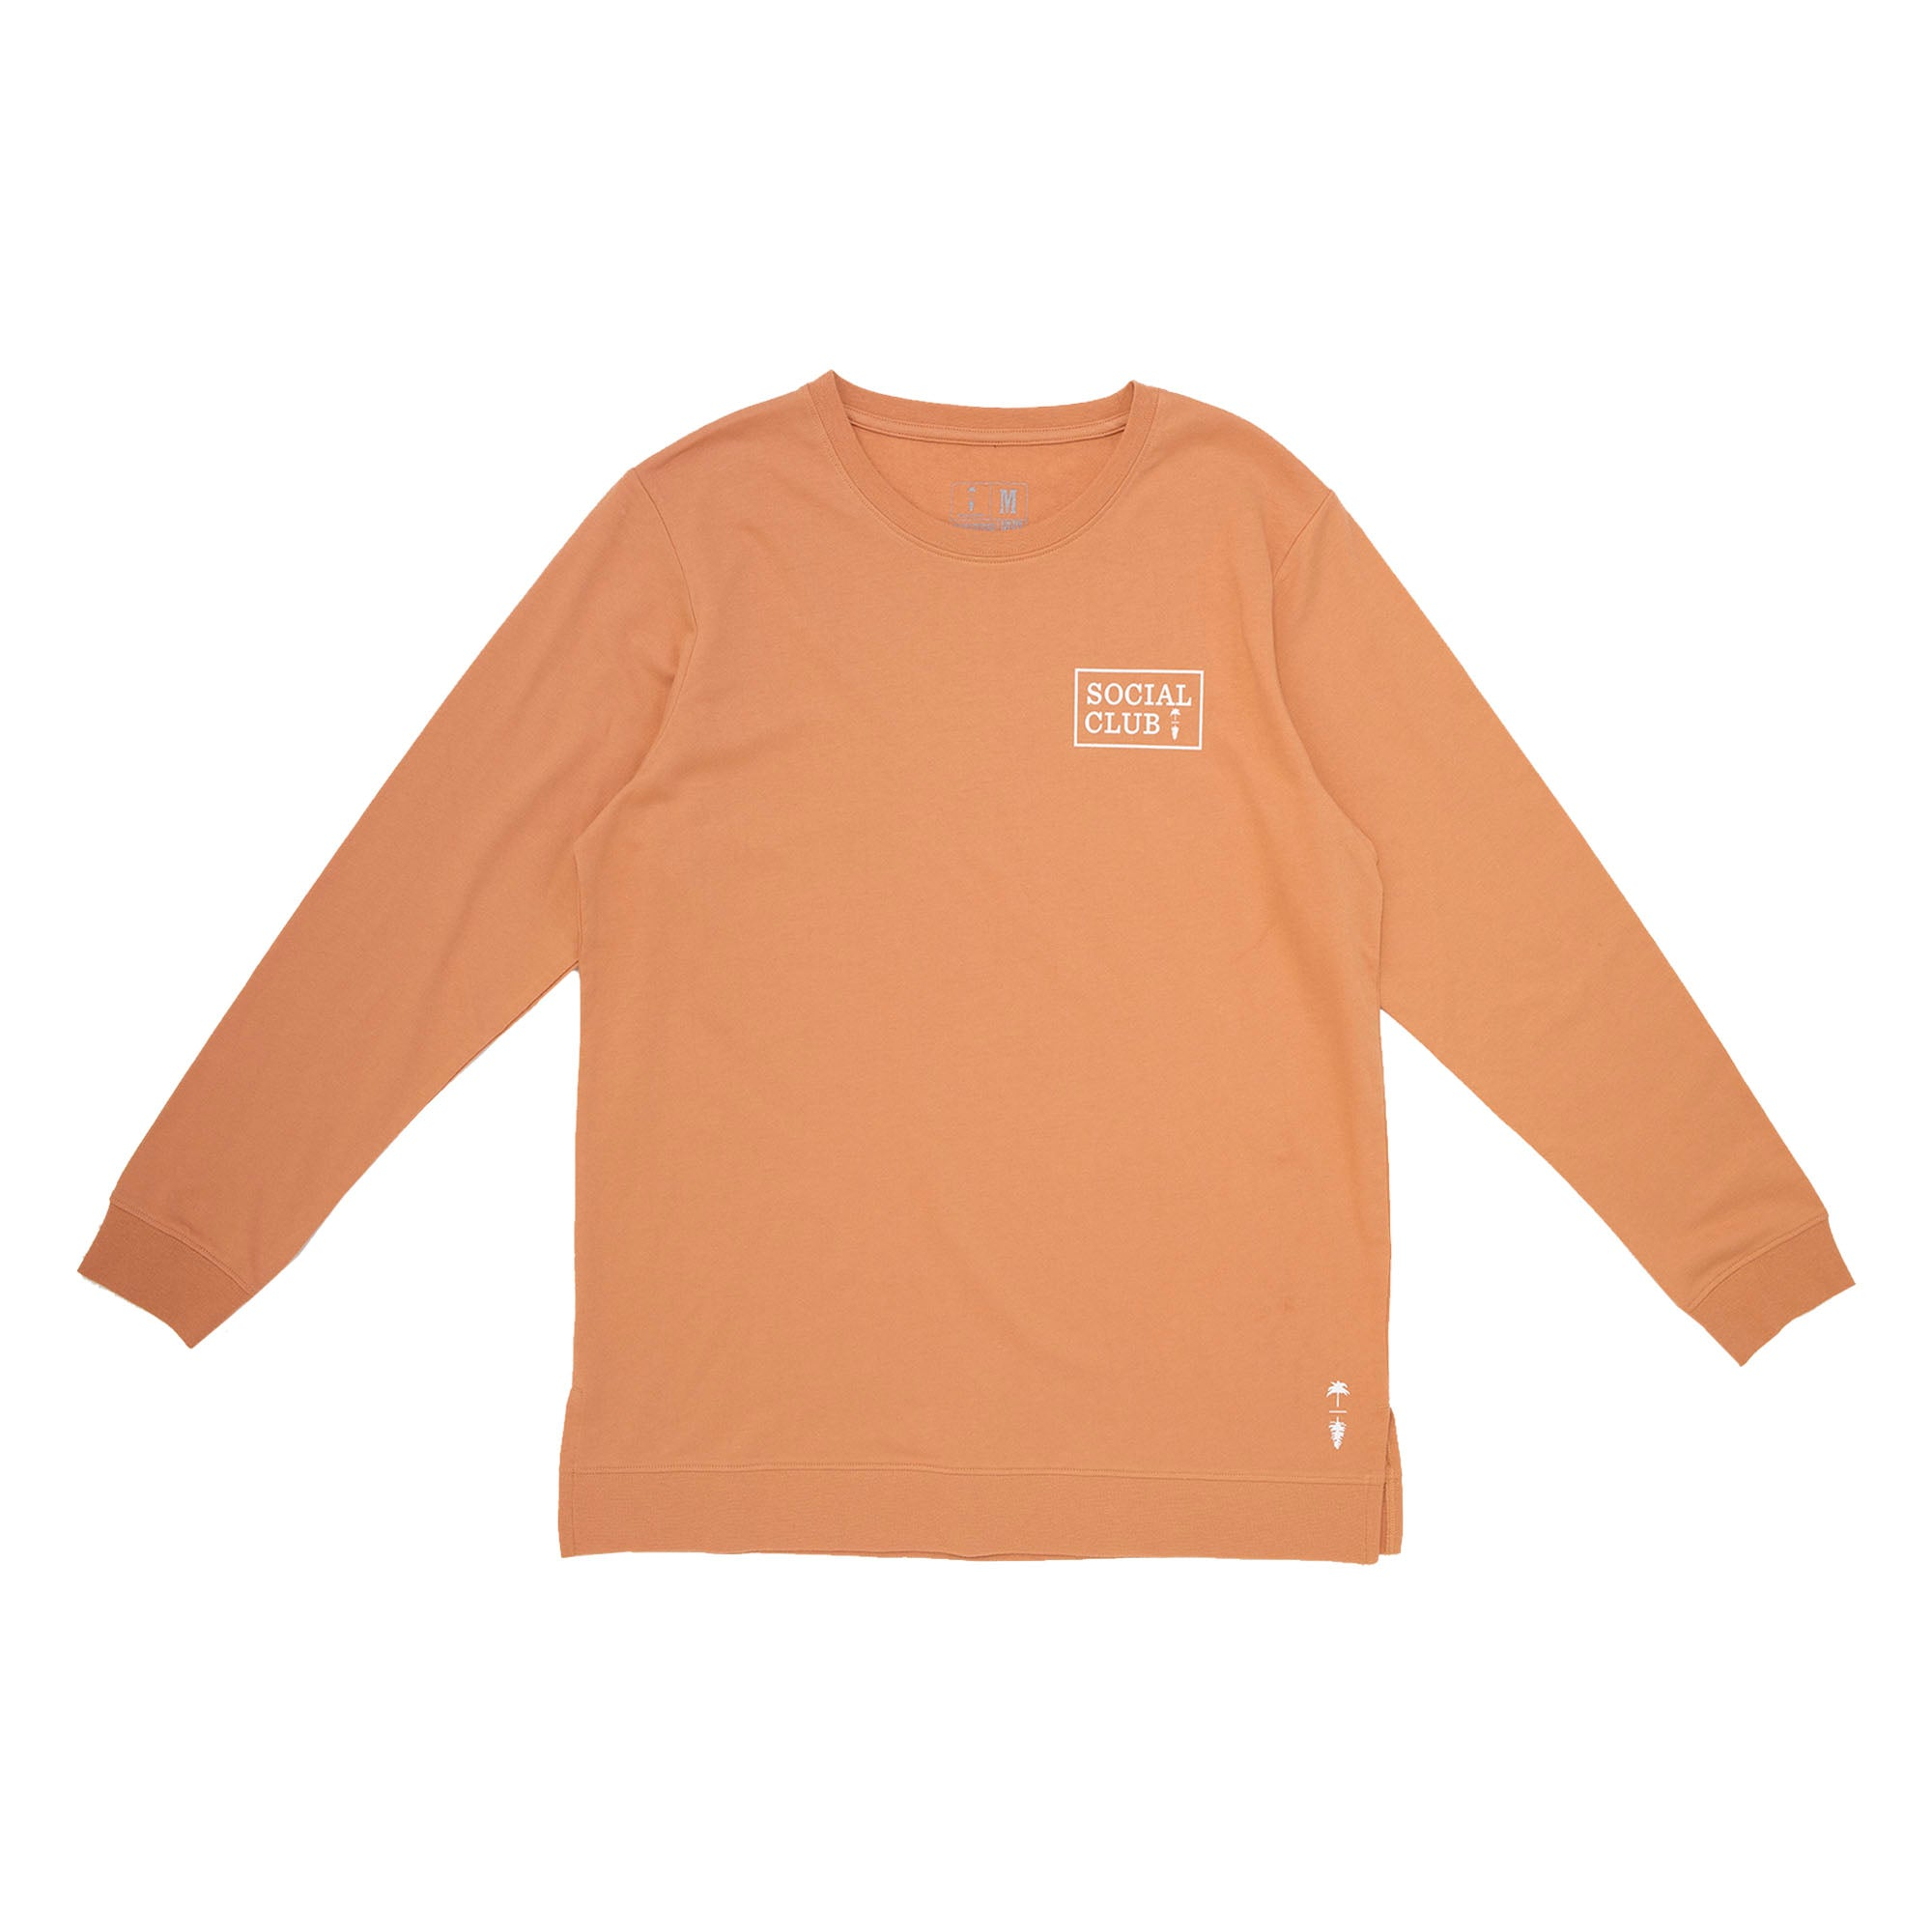 Breeze Club Crewneck